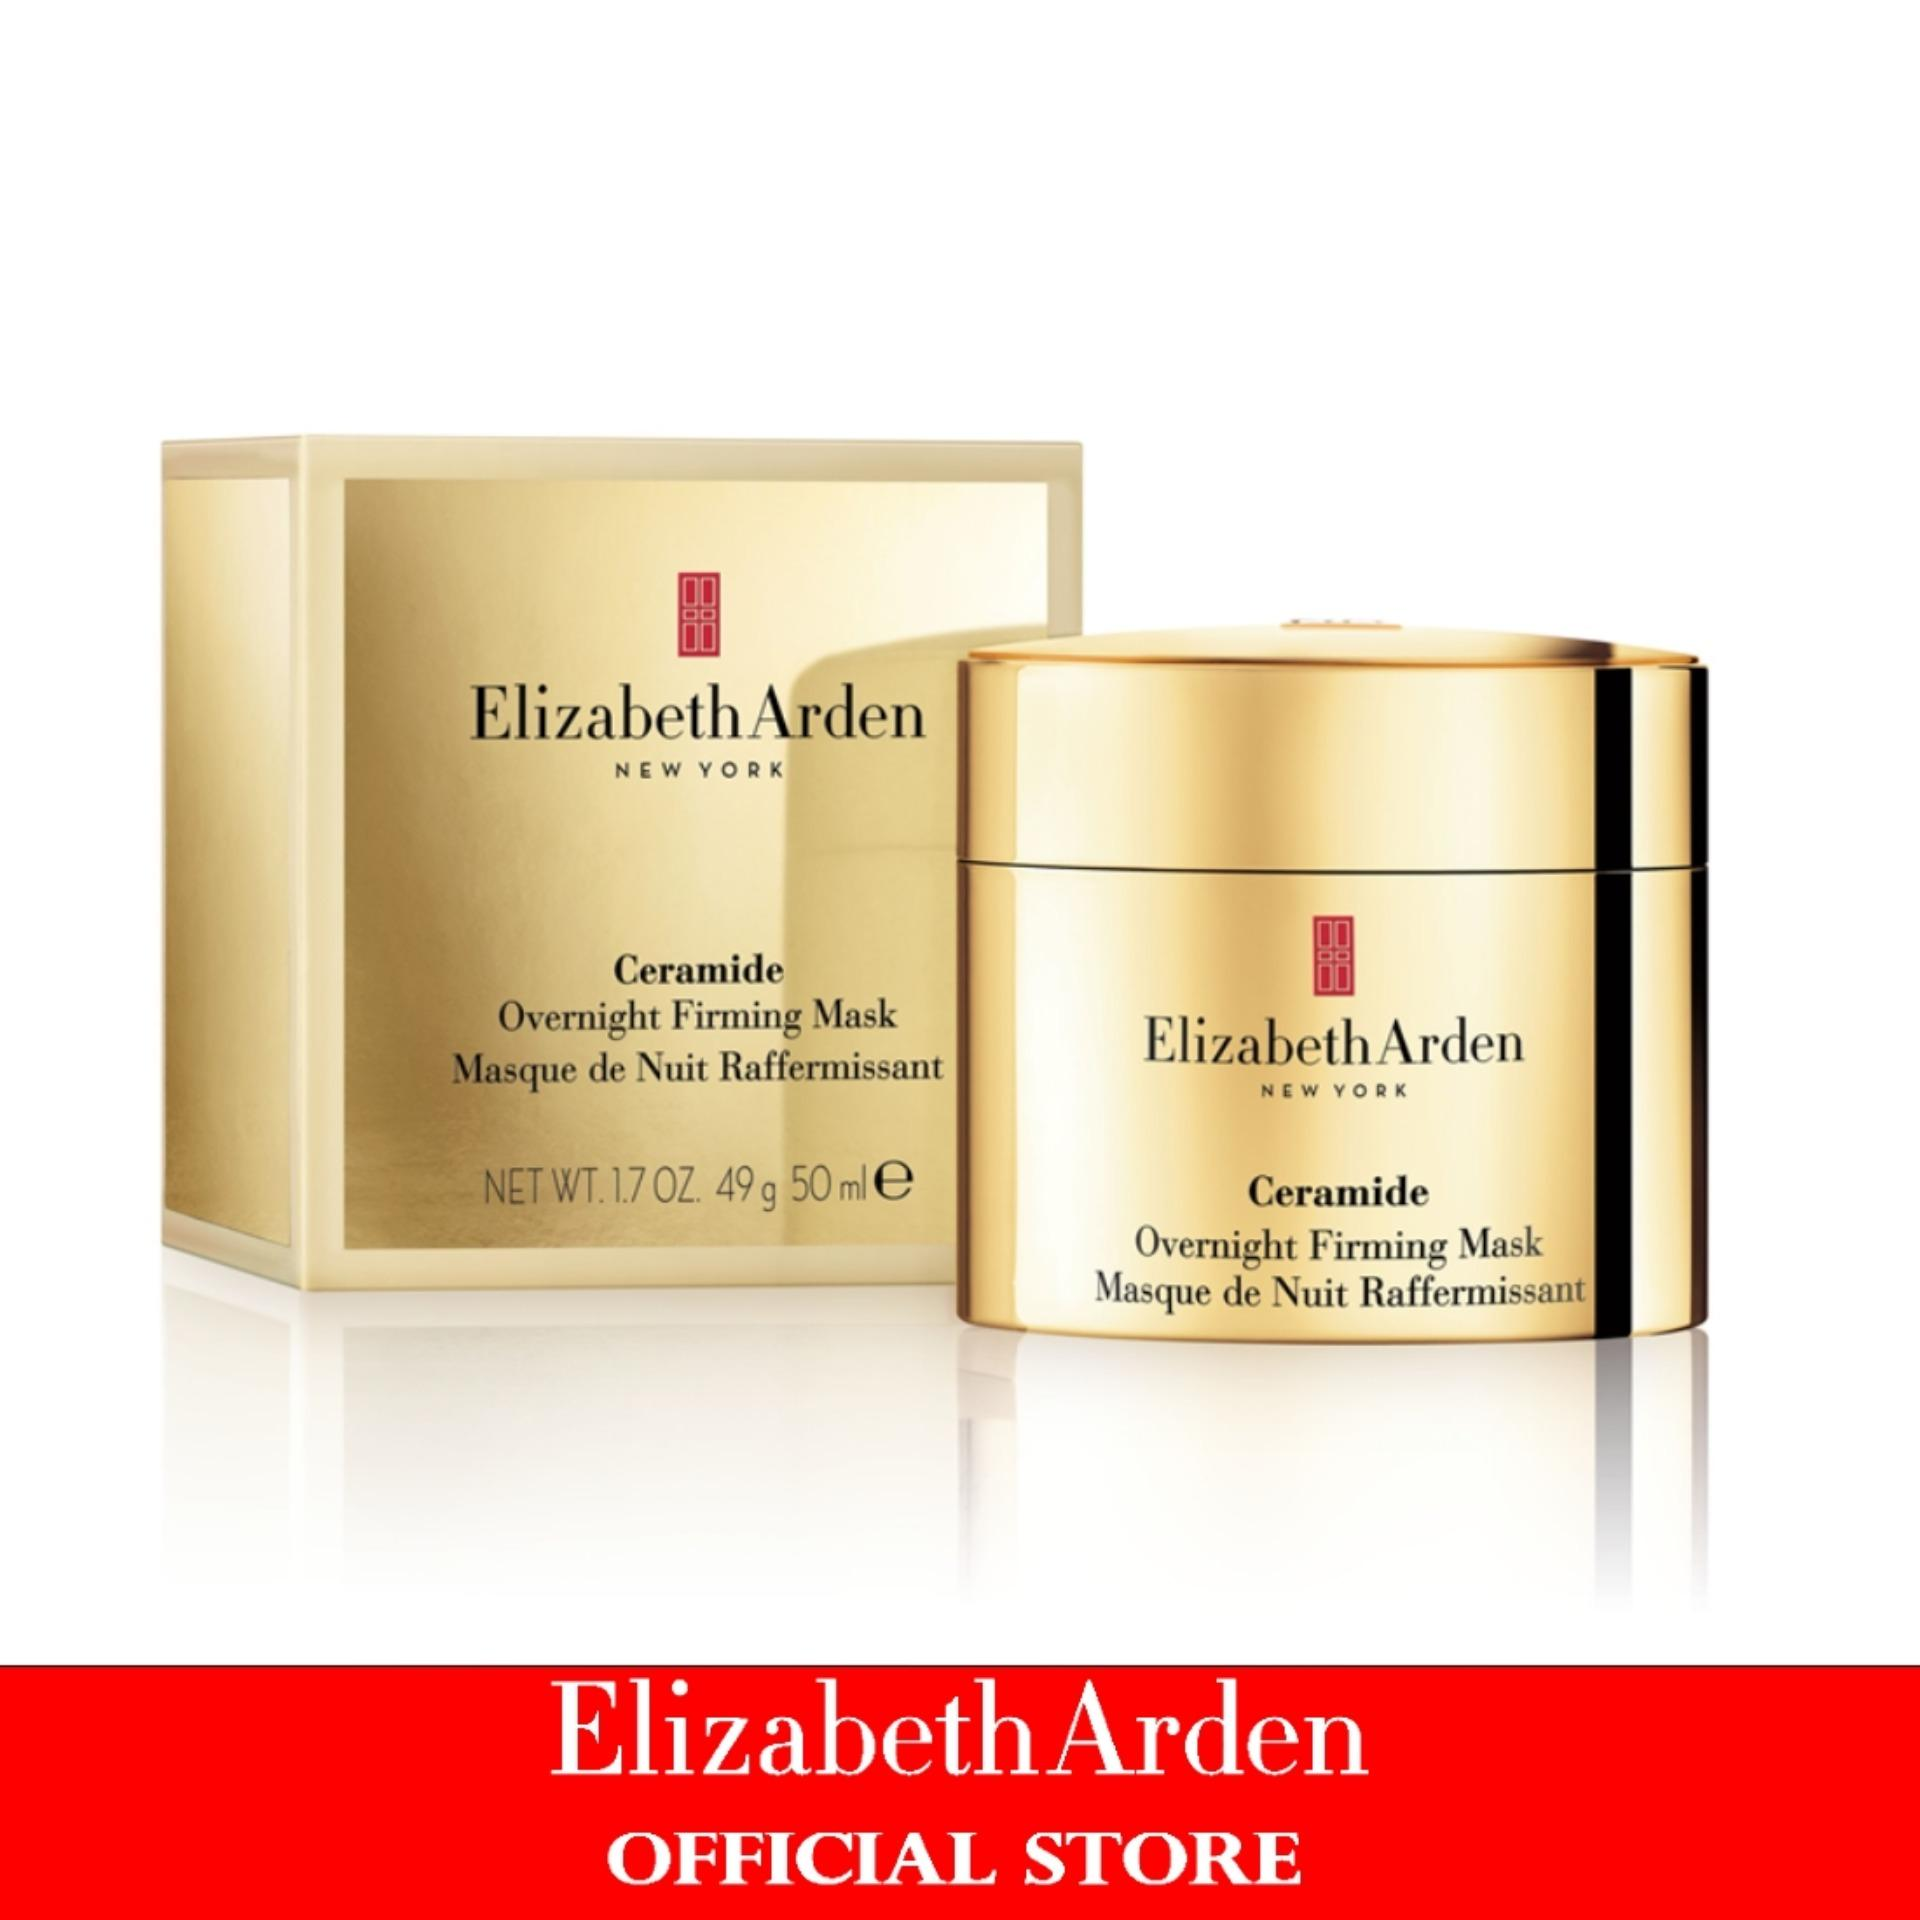 How To Get Elizabeth Arden Ceramide Overnight Firming Mask 50 Ml